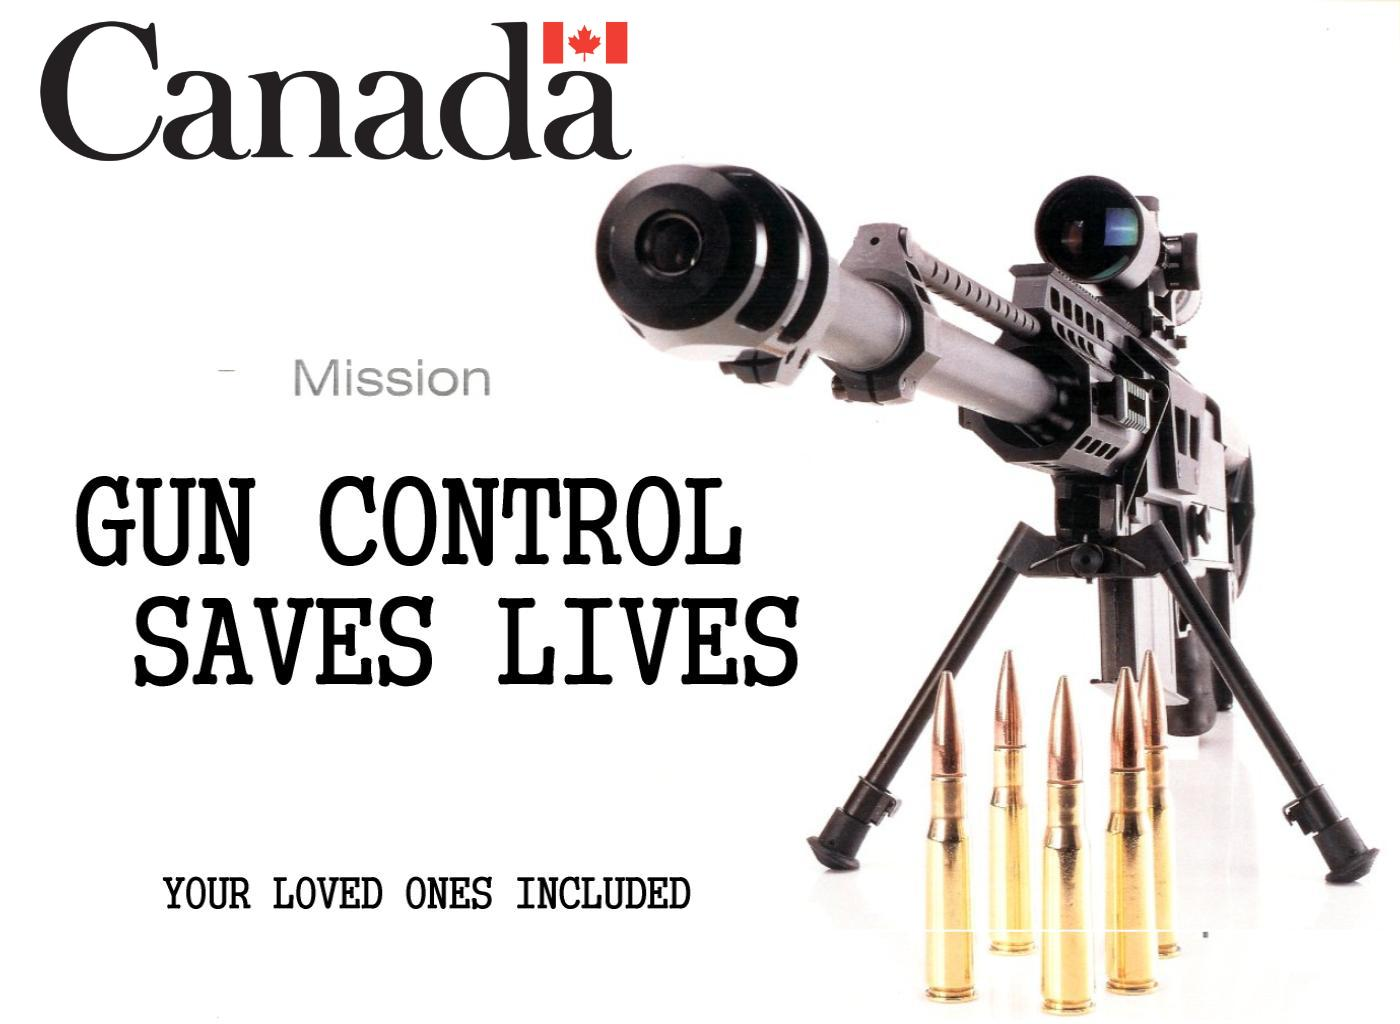 gun control should not abolish guns The gun control debate in america has long been a political hot-button issue, and president barack obama has staunchly advocated for stricter laws here are eight times the president has addressed the issue alert: should obama have more control over guns vote now 1 we're a nation that believes.